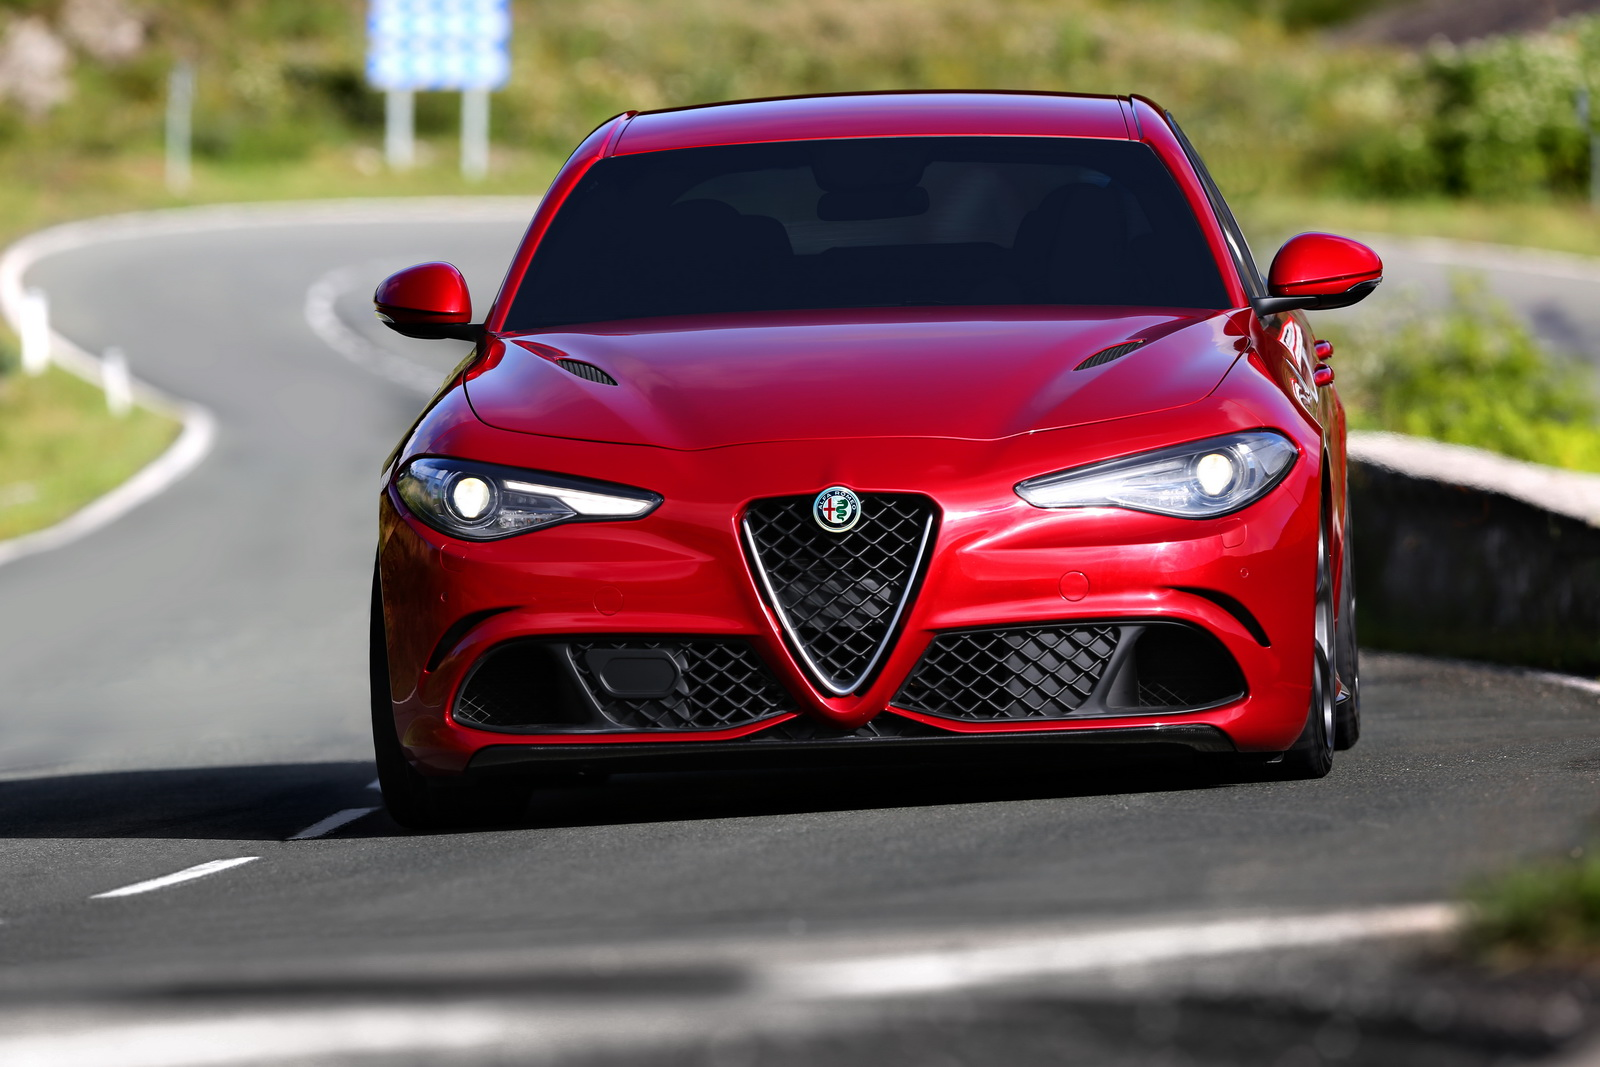 alfa romeo s 510hp giulia quadrifoglio priced from 79 000 in italy laps ring in 7 39 carscoops. Black Bedroom Furniture Sets. Home Design Ideas